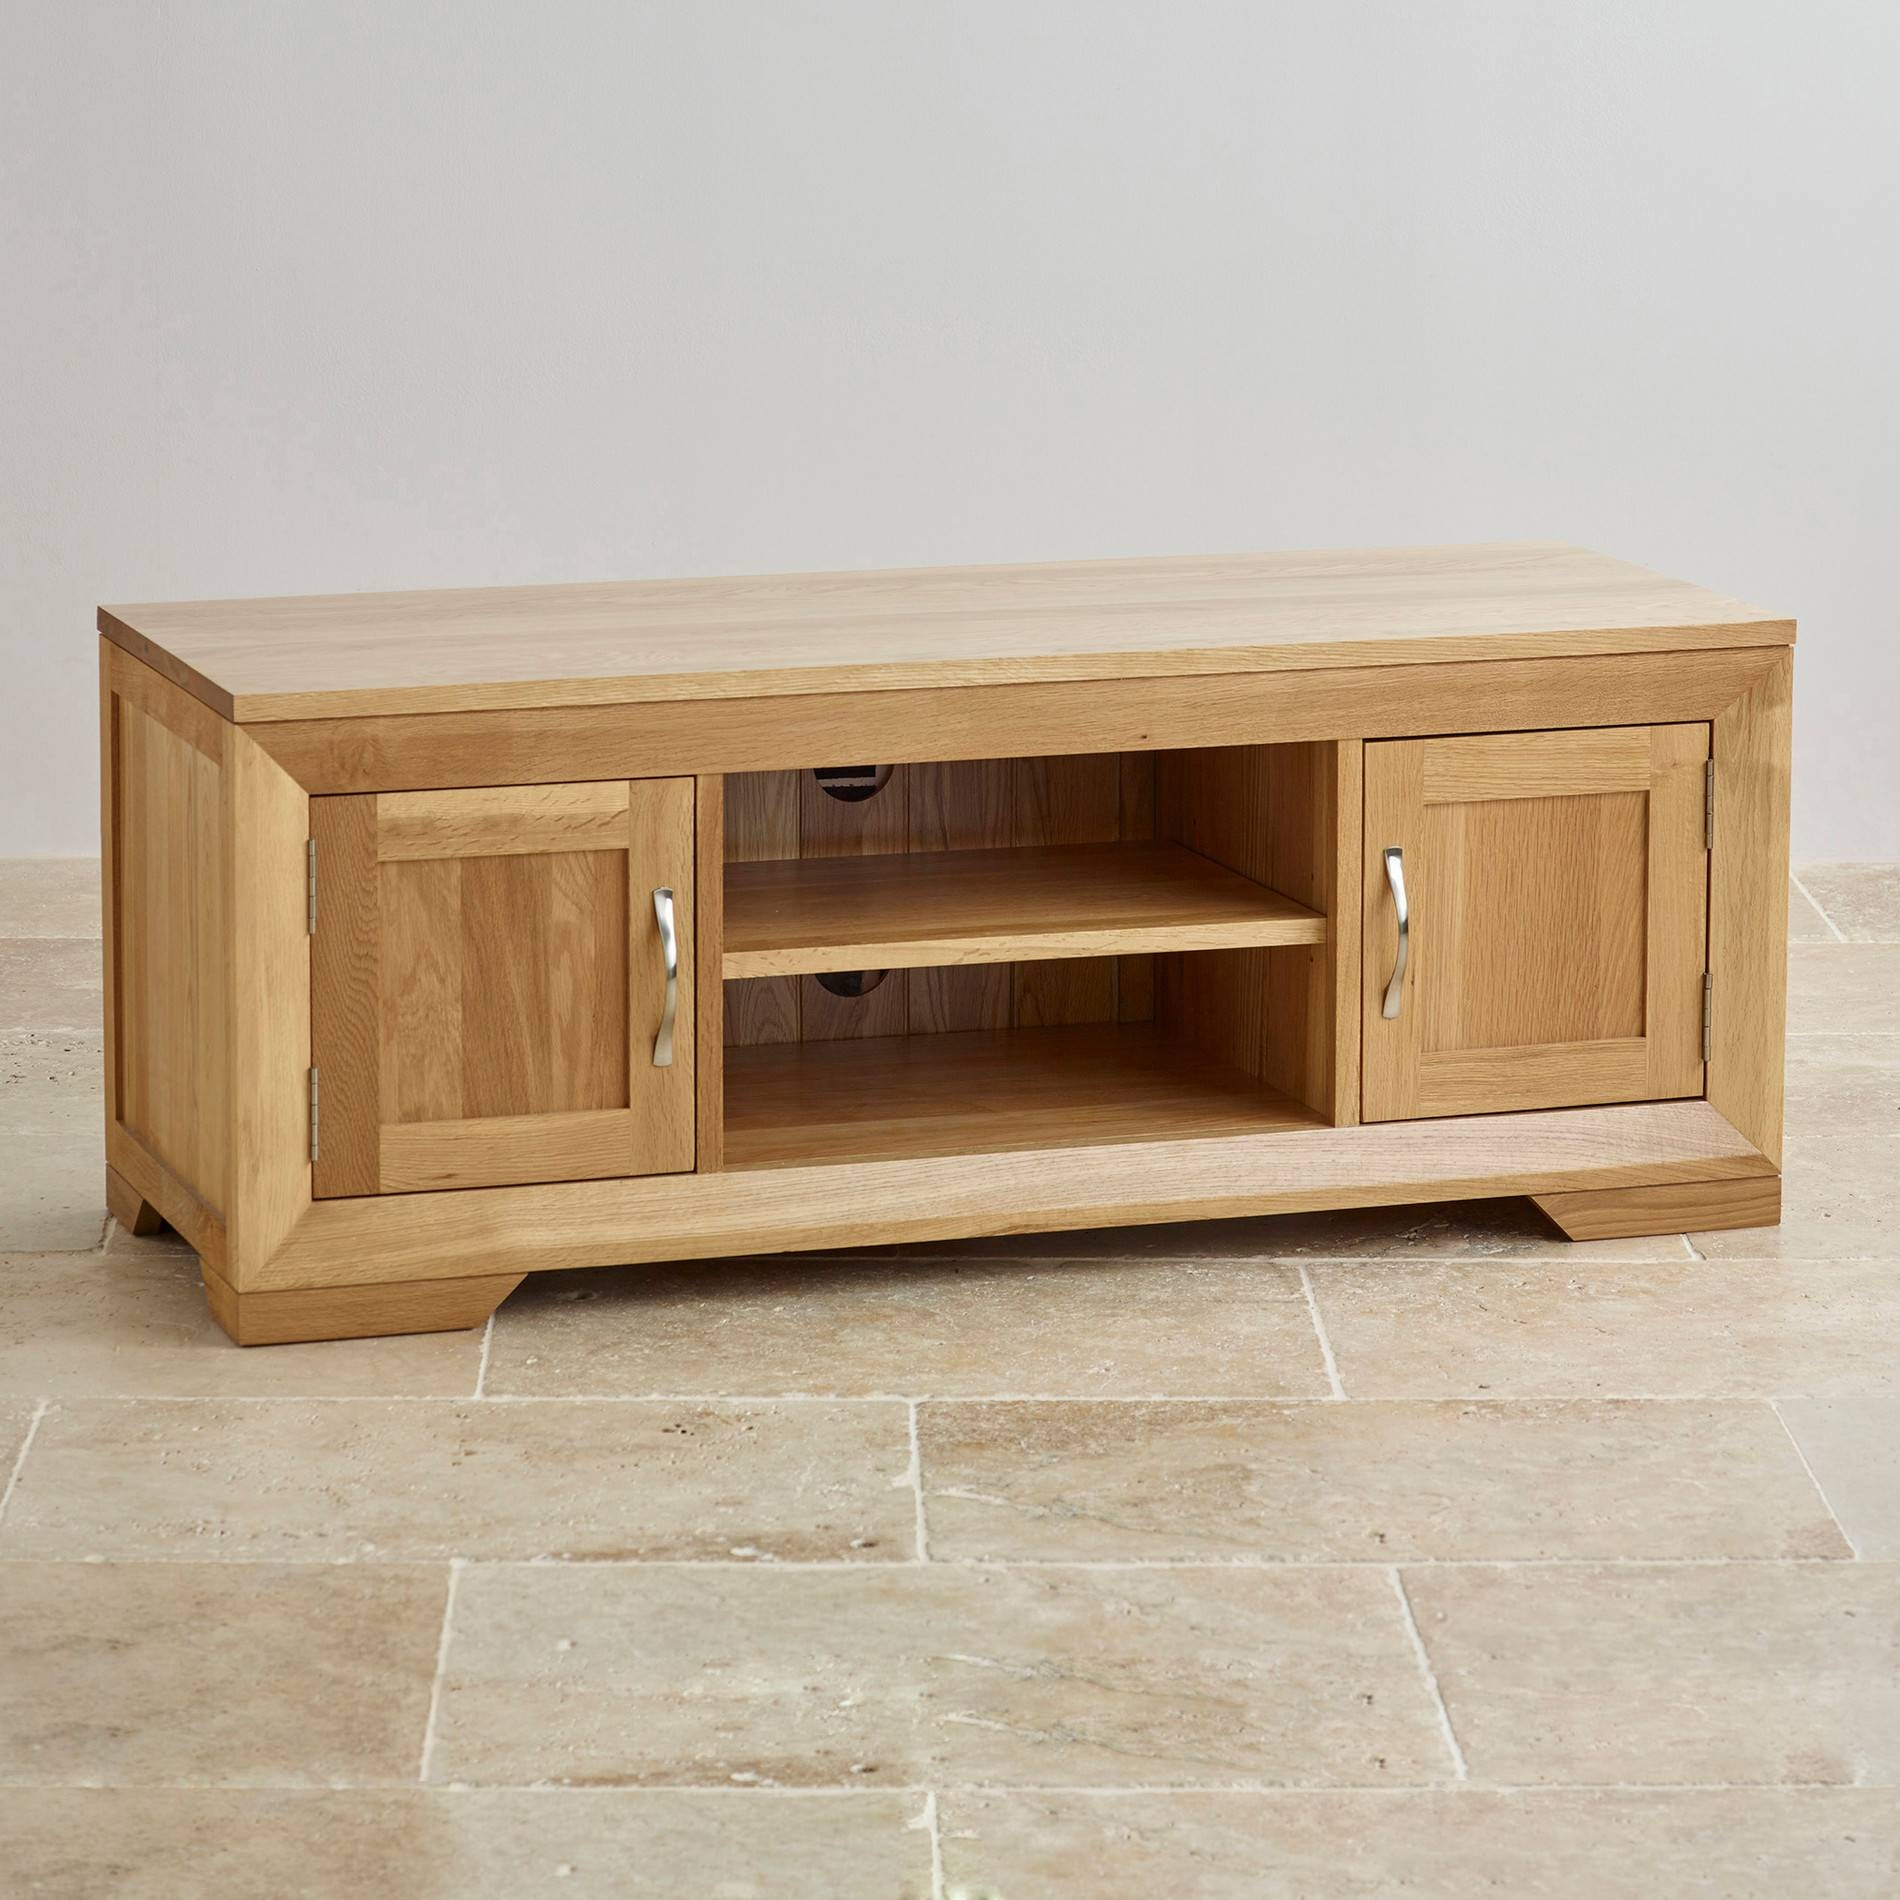 Bevel Natural Solid Oak Widescreen Tv + Dvd Cabinet with regard to Oak Tv Cabinets (Image 1 of 15)